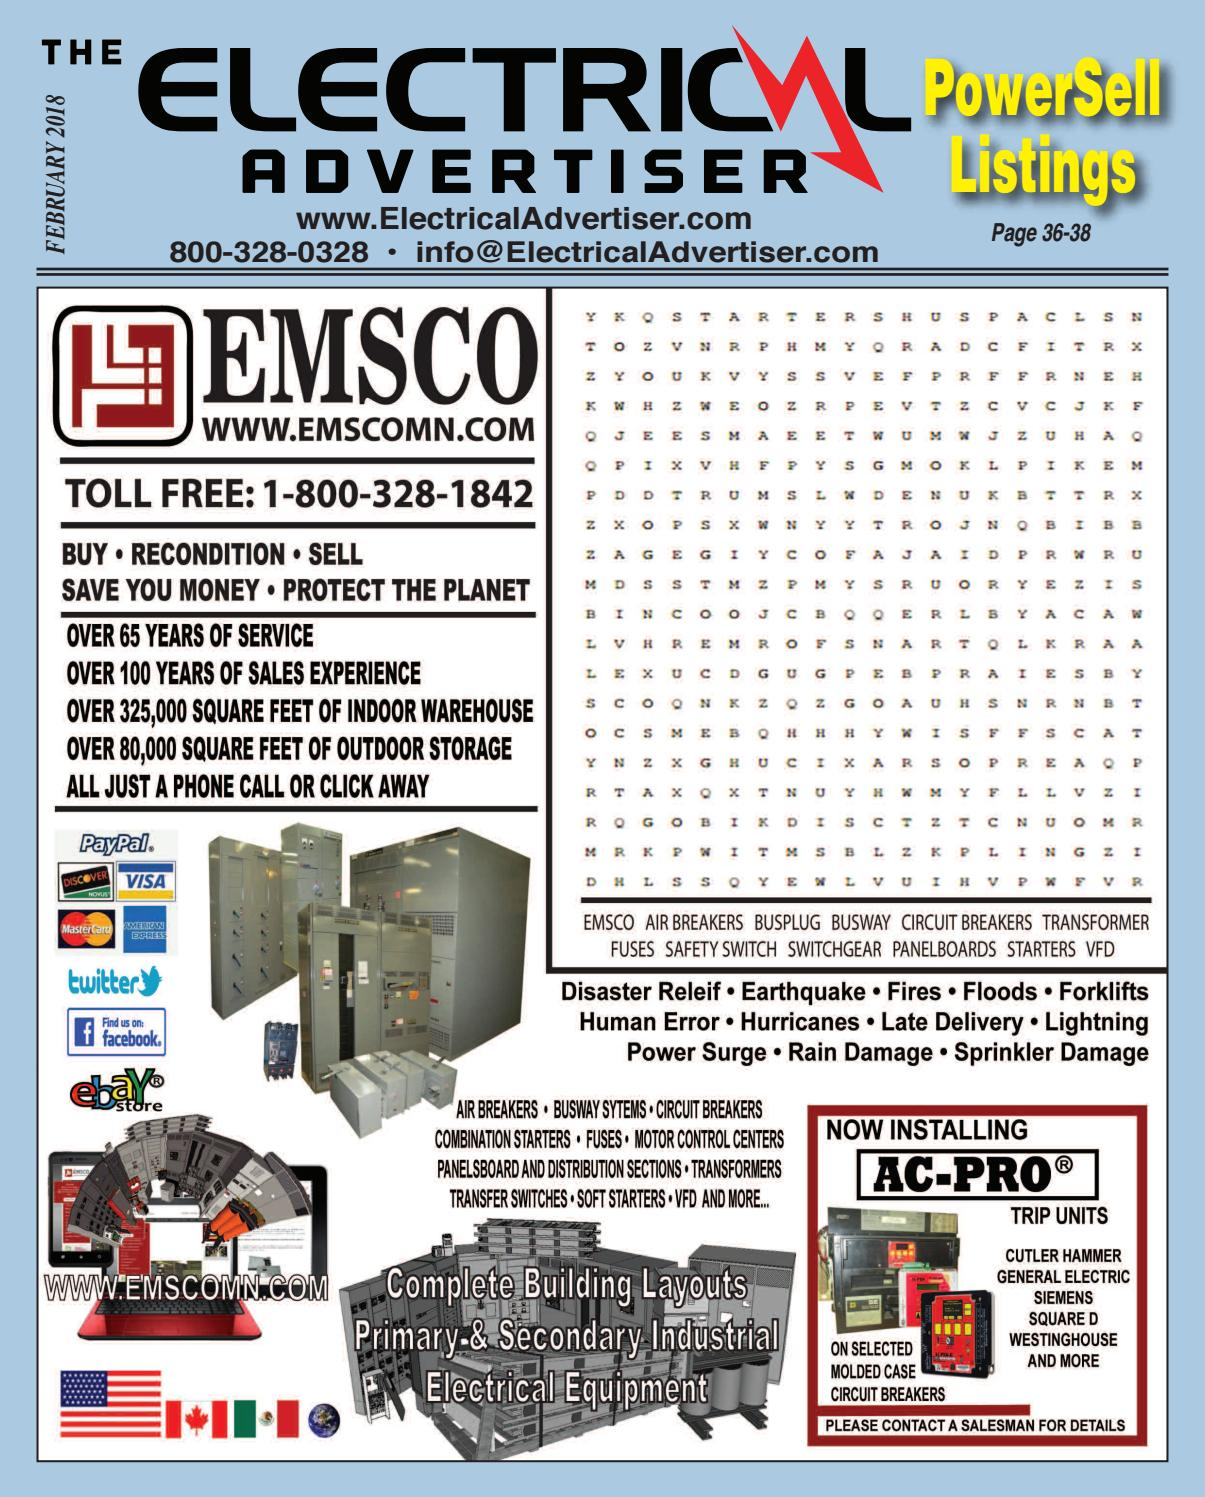 The Electrical Advertiser Trade Publication Feb 2018 by ... on